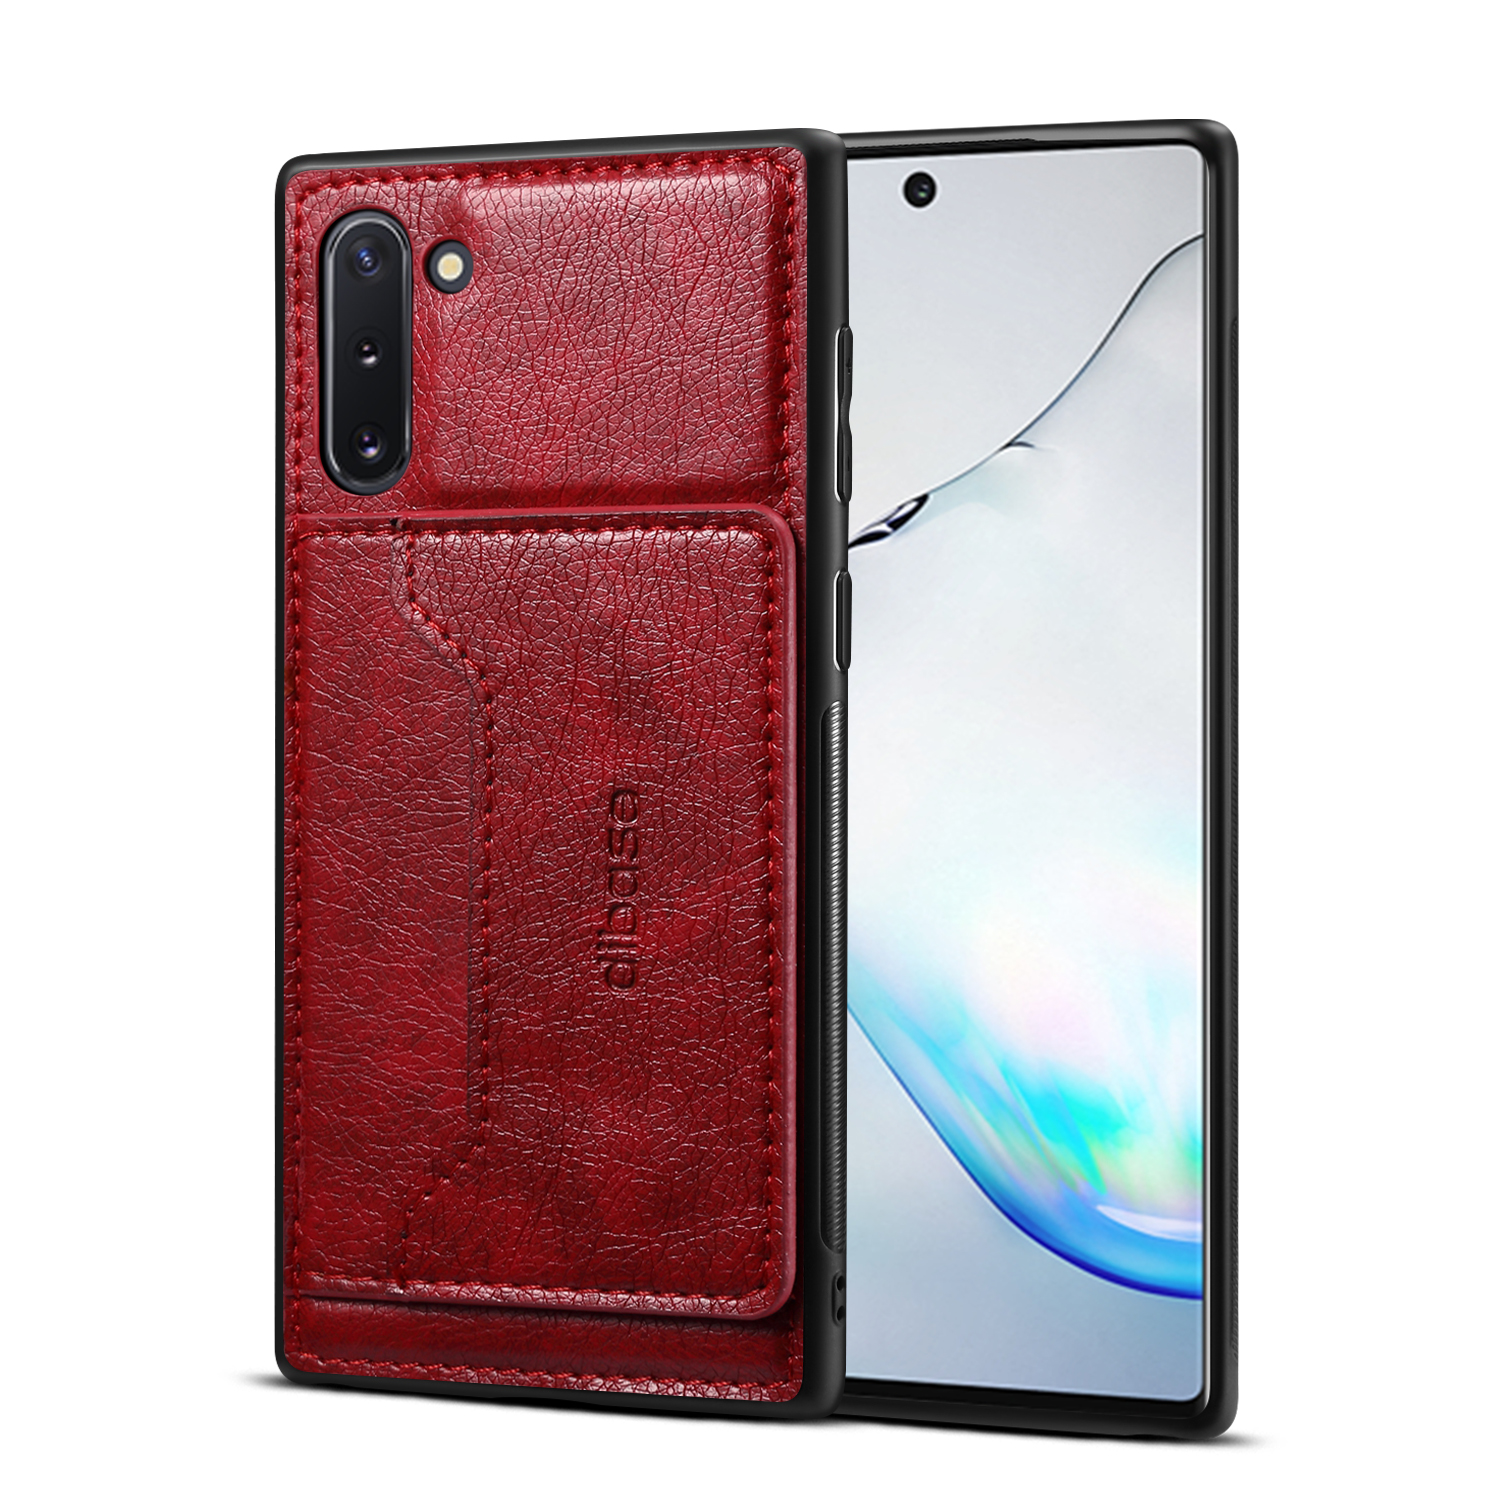 For Samsung Note 10/10 Pro Cellphone Cover 2-in-1 Stand Function Textured PU Leather Anti-scratch Overall Protection Case Card Holder red